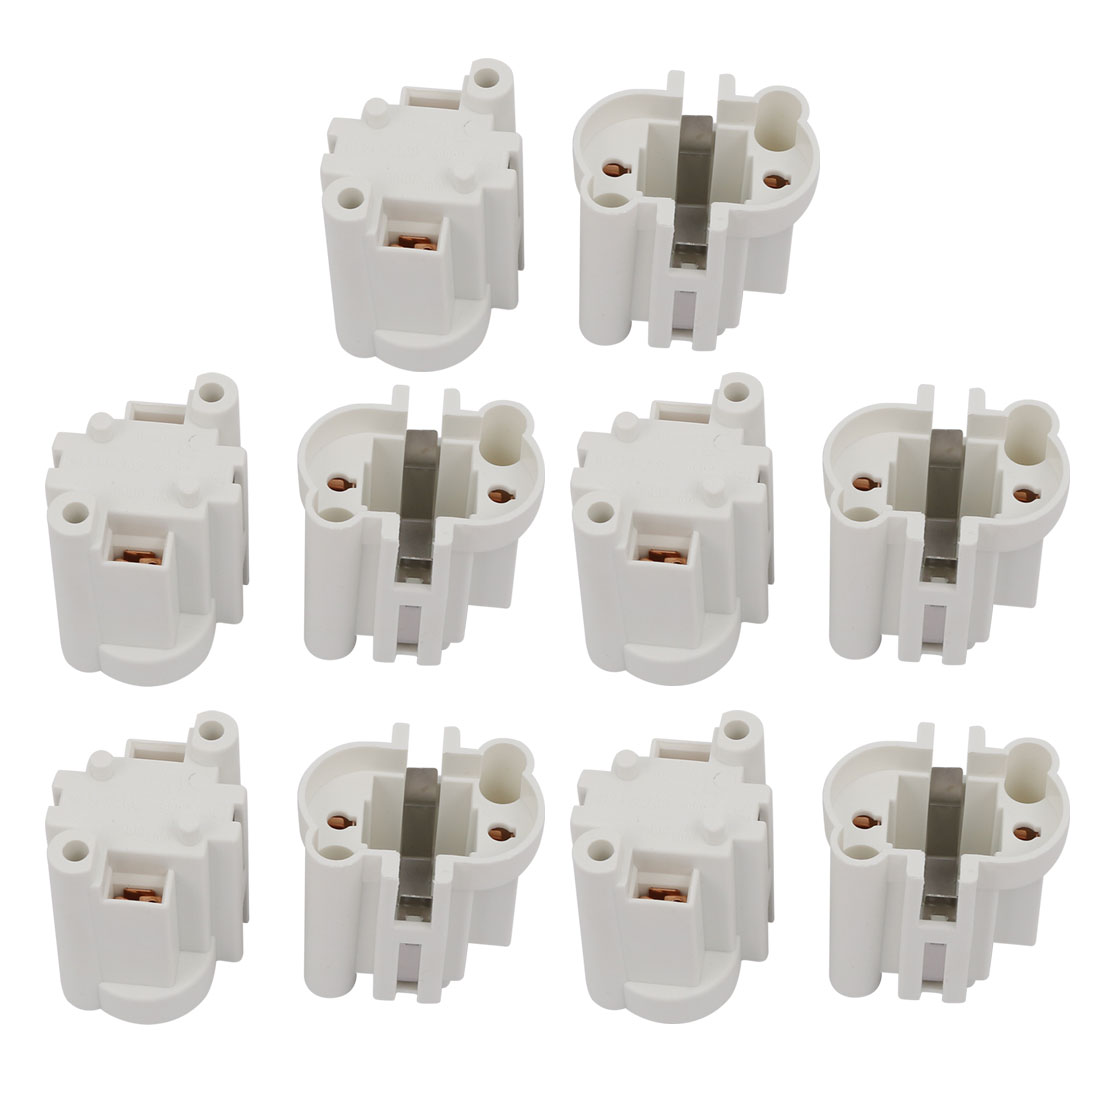 10 Pcs G23-F269 AC 500V 2A Light Socket Base Fluorescent PL Tube Lamp Holder